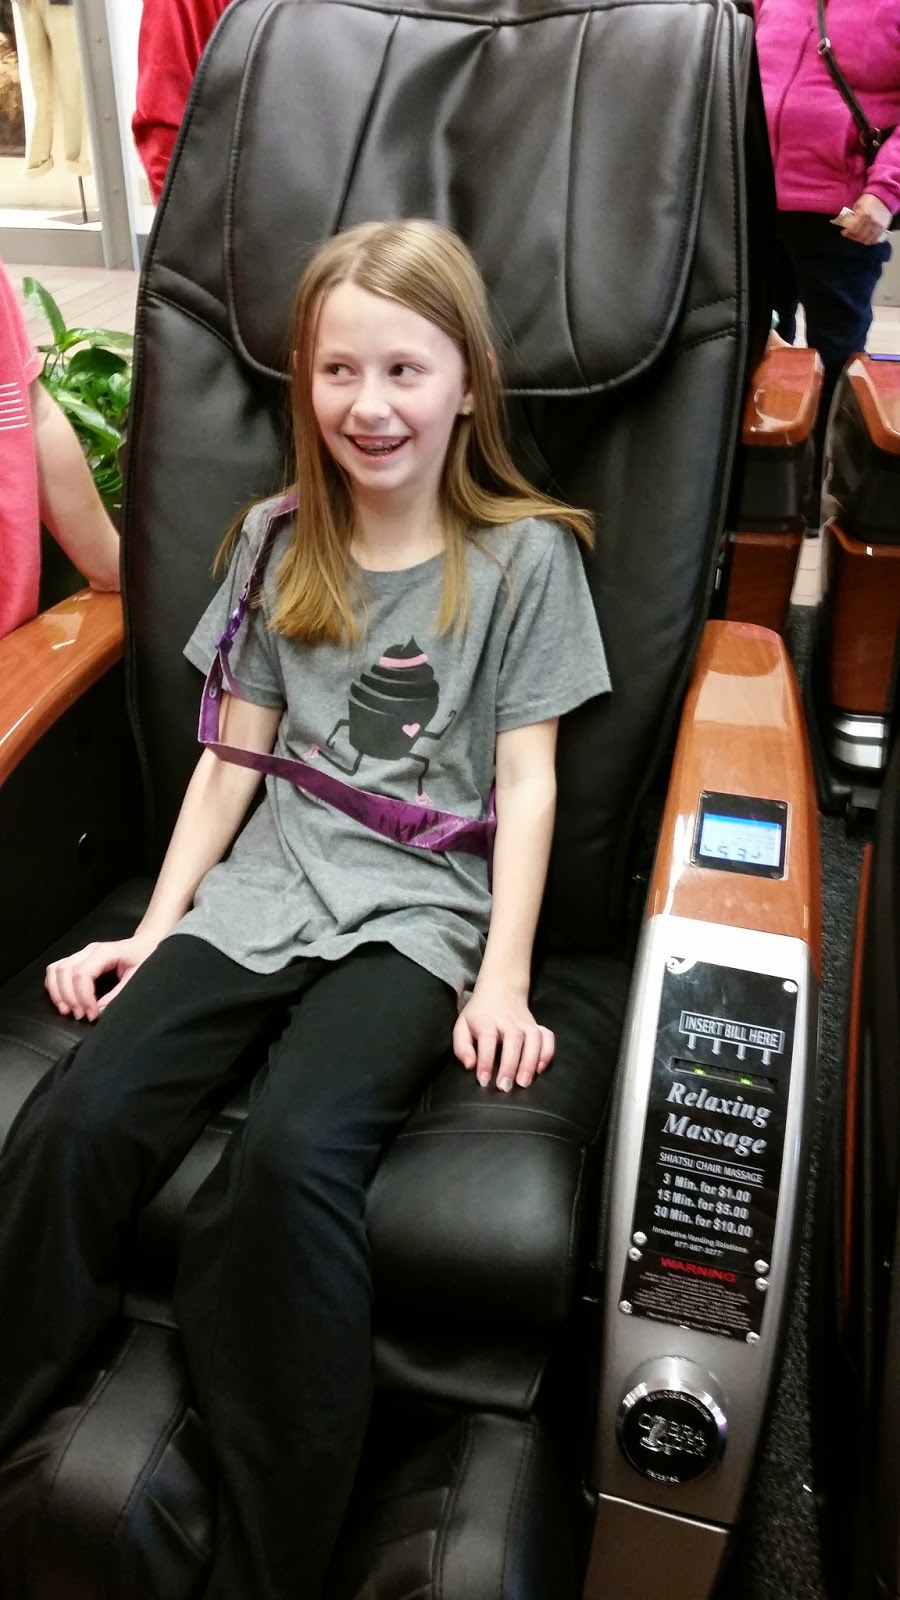 massage chair for kids. trying out the massage chairs at mall chair for kids :